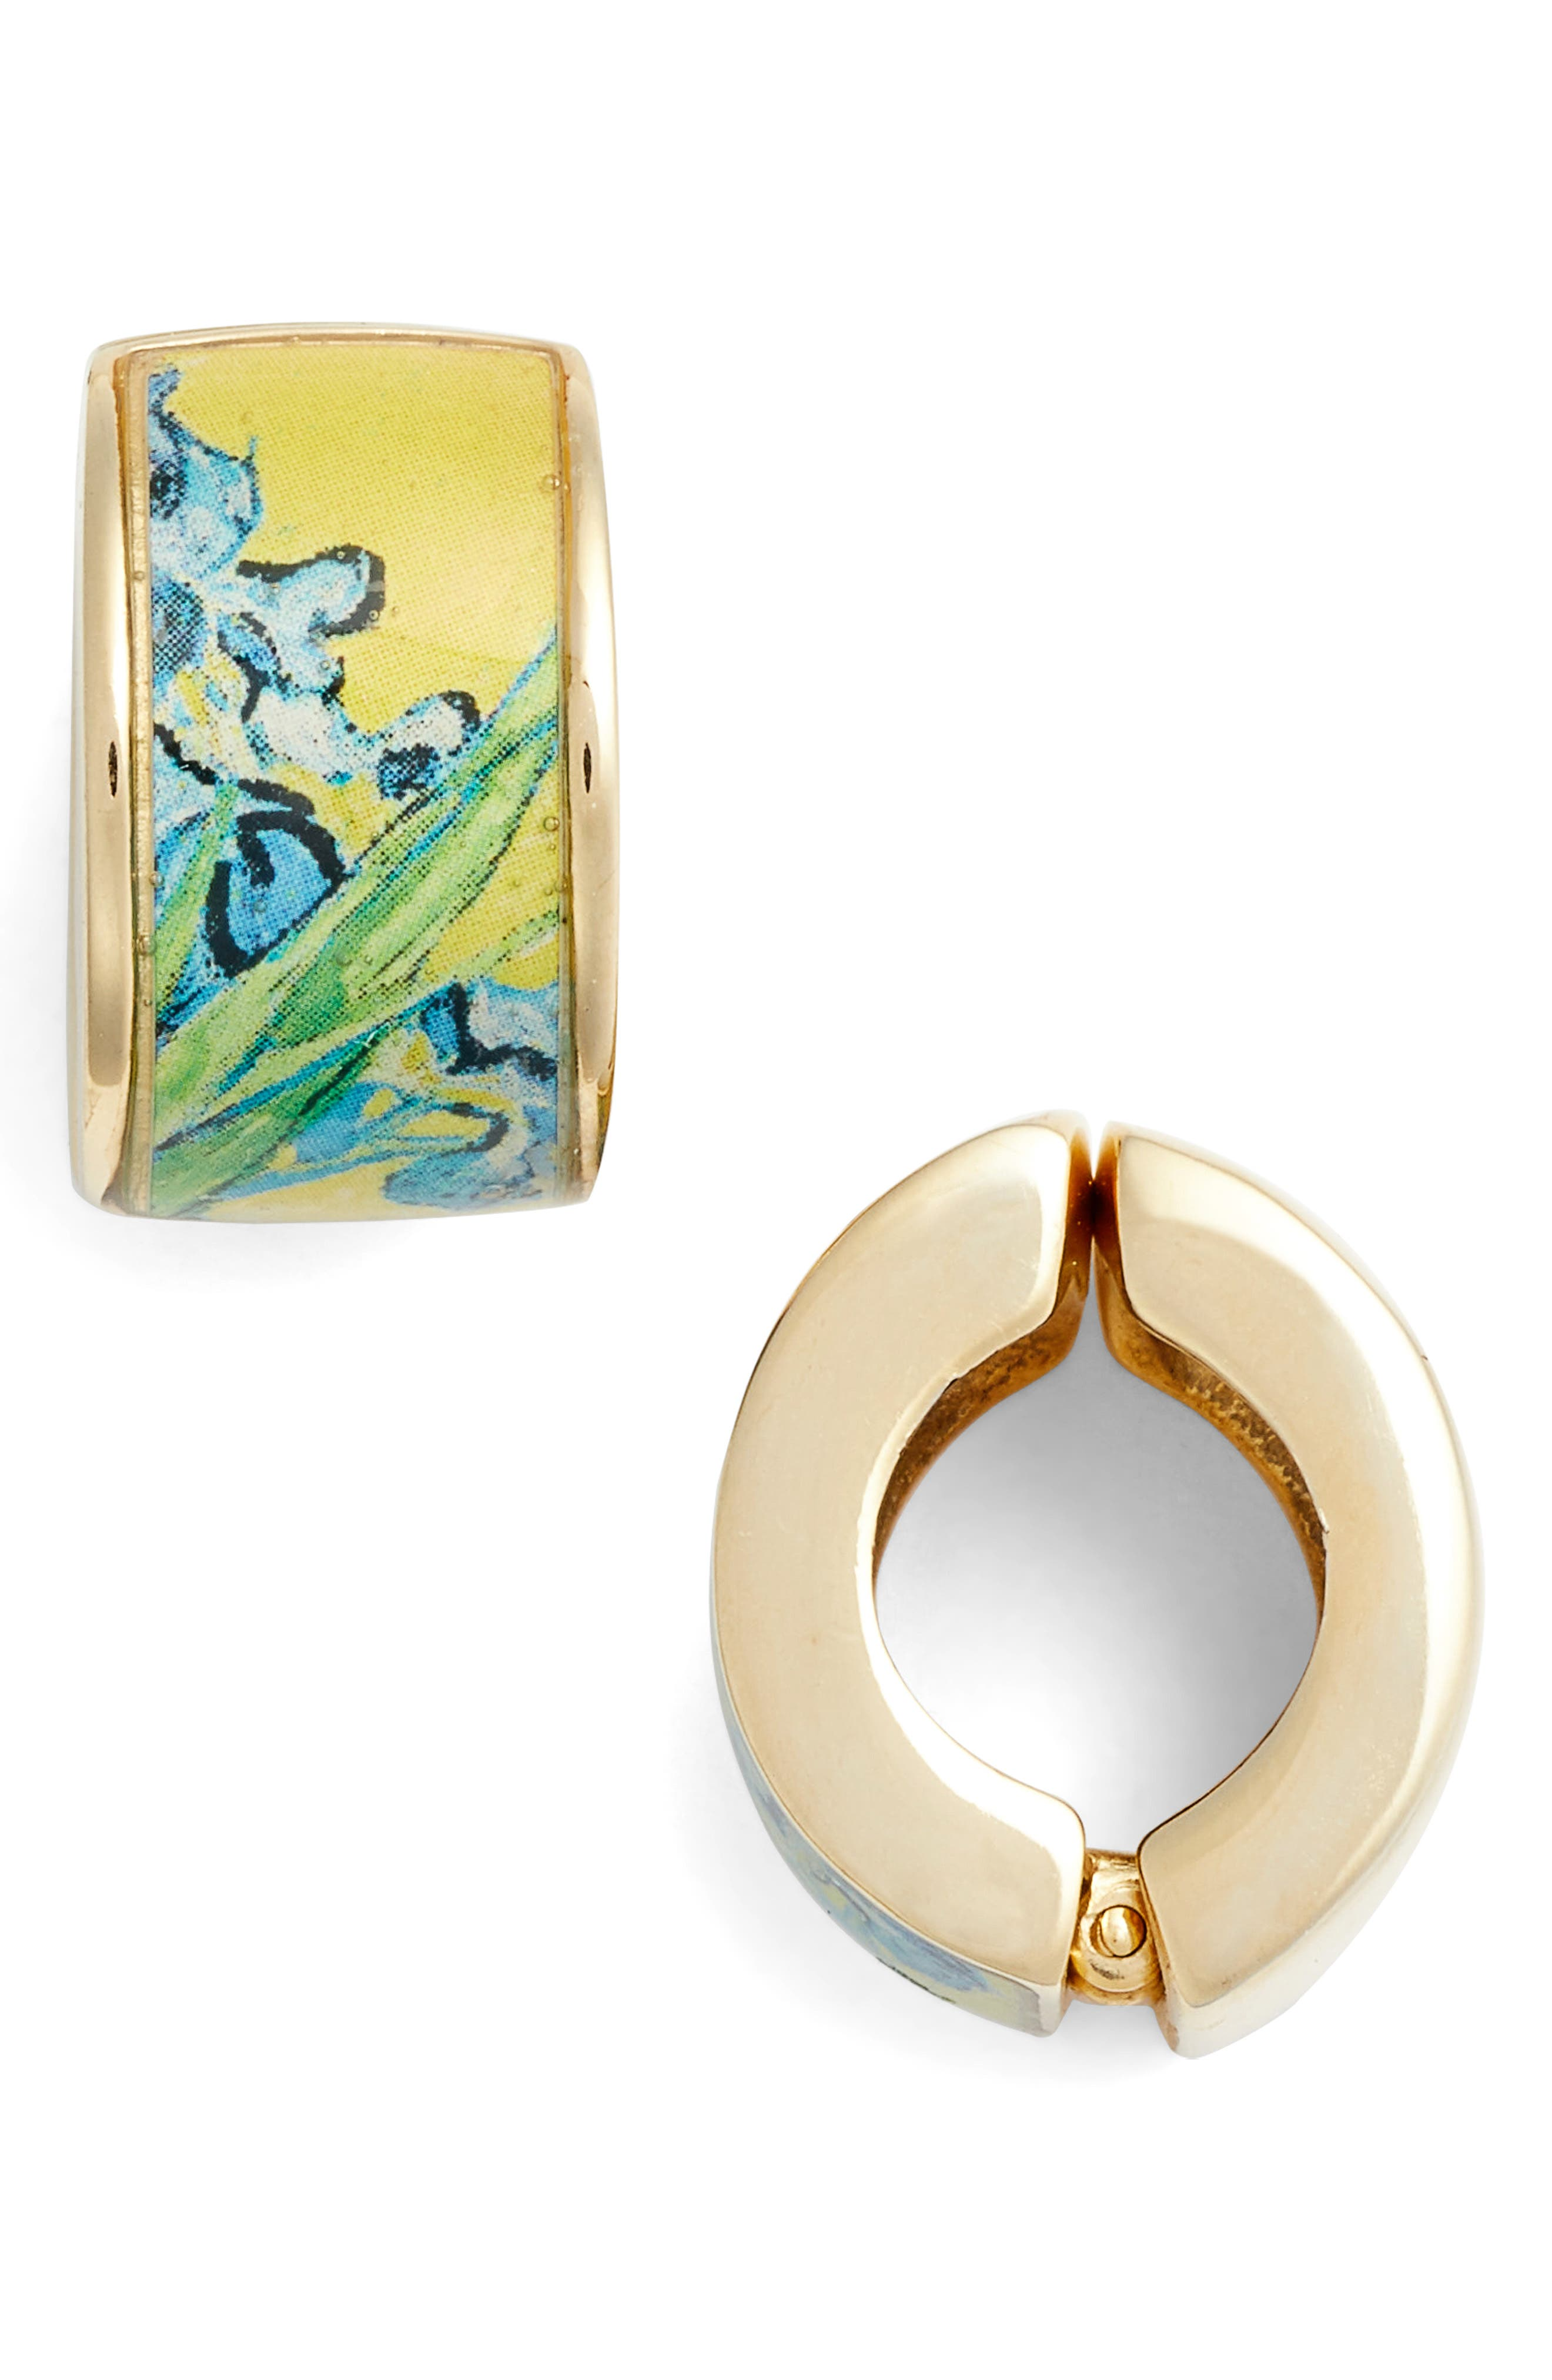 ERWIN PEARL Goldtone Irises Clip-on Earrings, Main, color, YELLOW/ GOLD